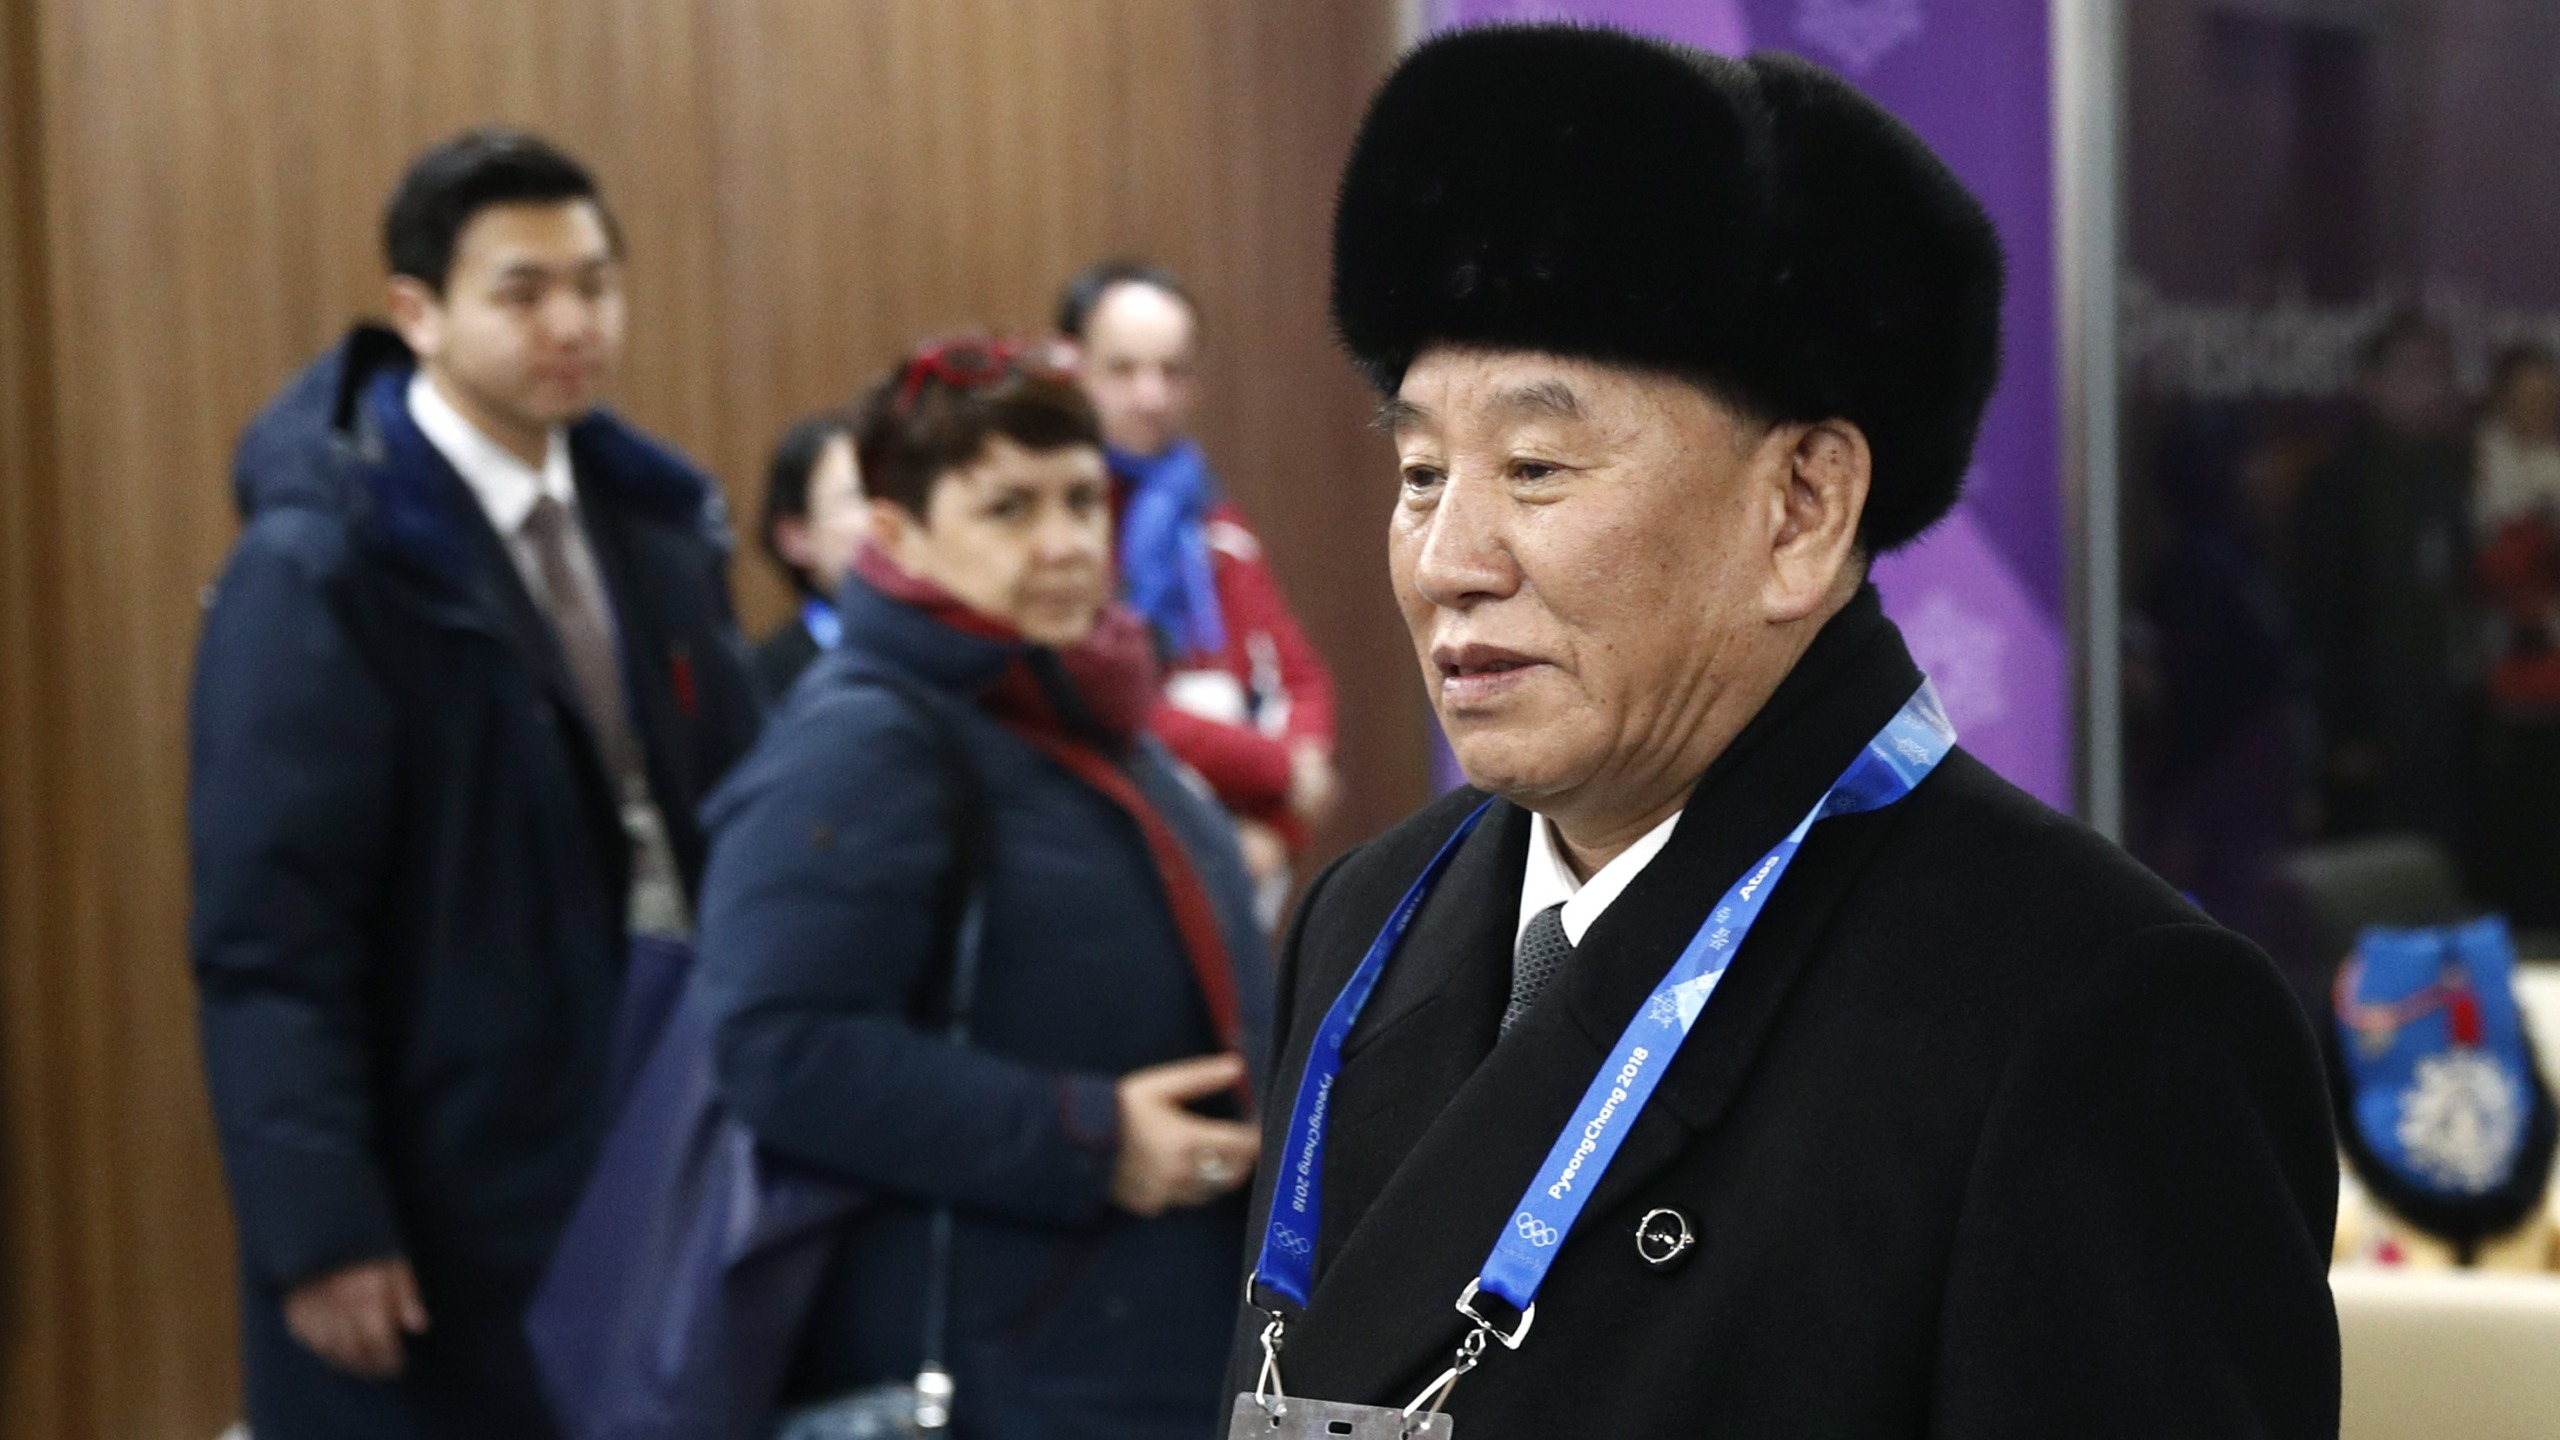 Kim Yong Chol, vice chairman of North Korea's ruling Workers' Party Central Committee, arrives at the closing ceremony of the 2018 Winter Olympics at PyeongChang Olympic Stadium on February 25, 2018, in Pyeongchang-gun, South Korea. (Credit: Patrick Semansky - Pool /Getty Images)